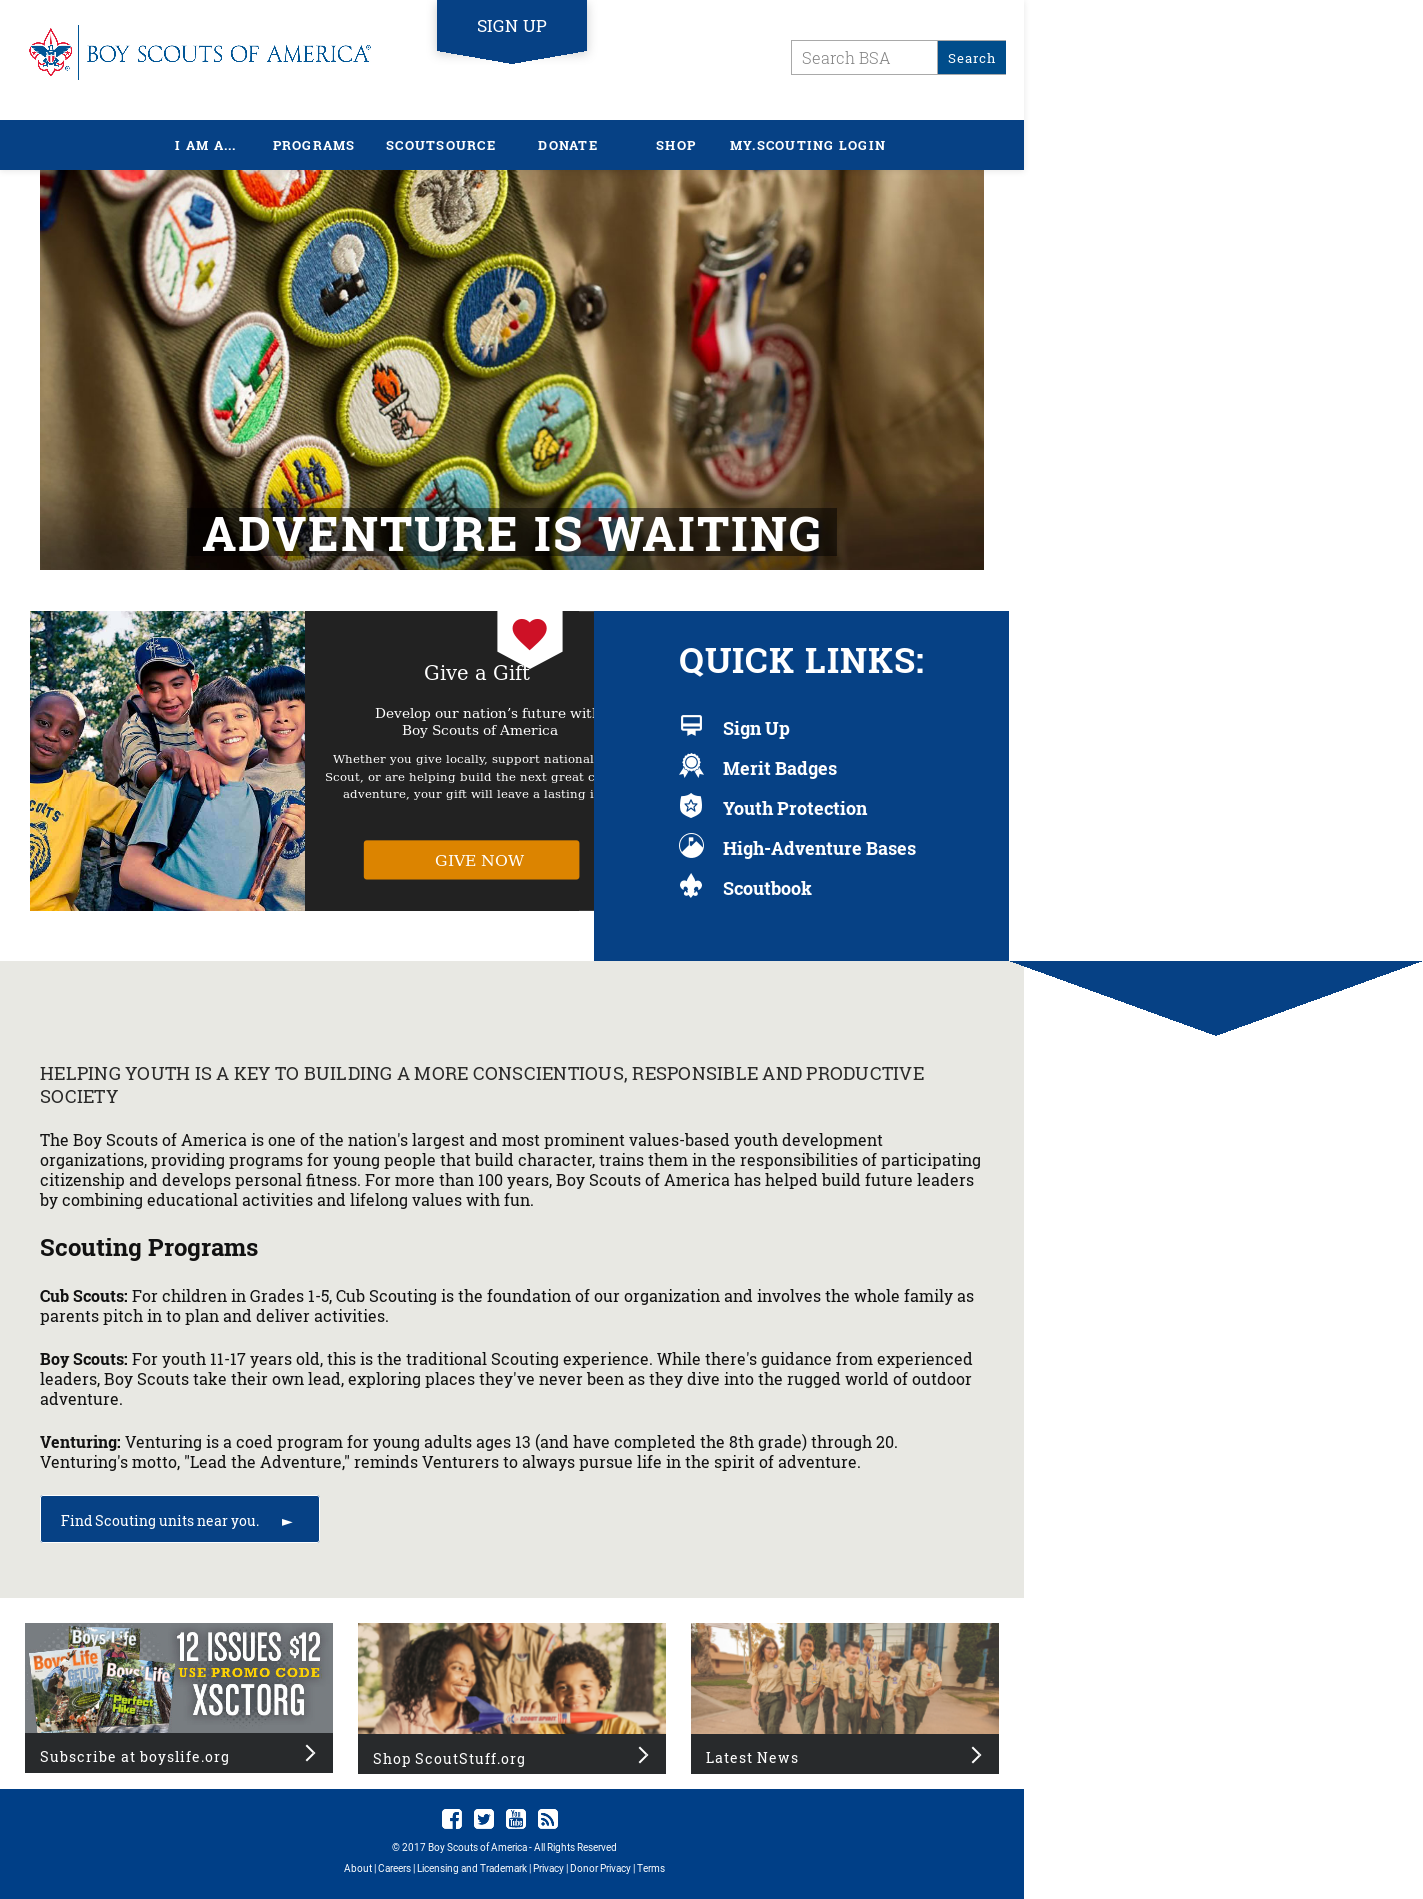 Boy Scouts of America Competitors, Revenue and Employees